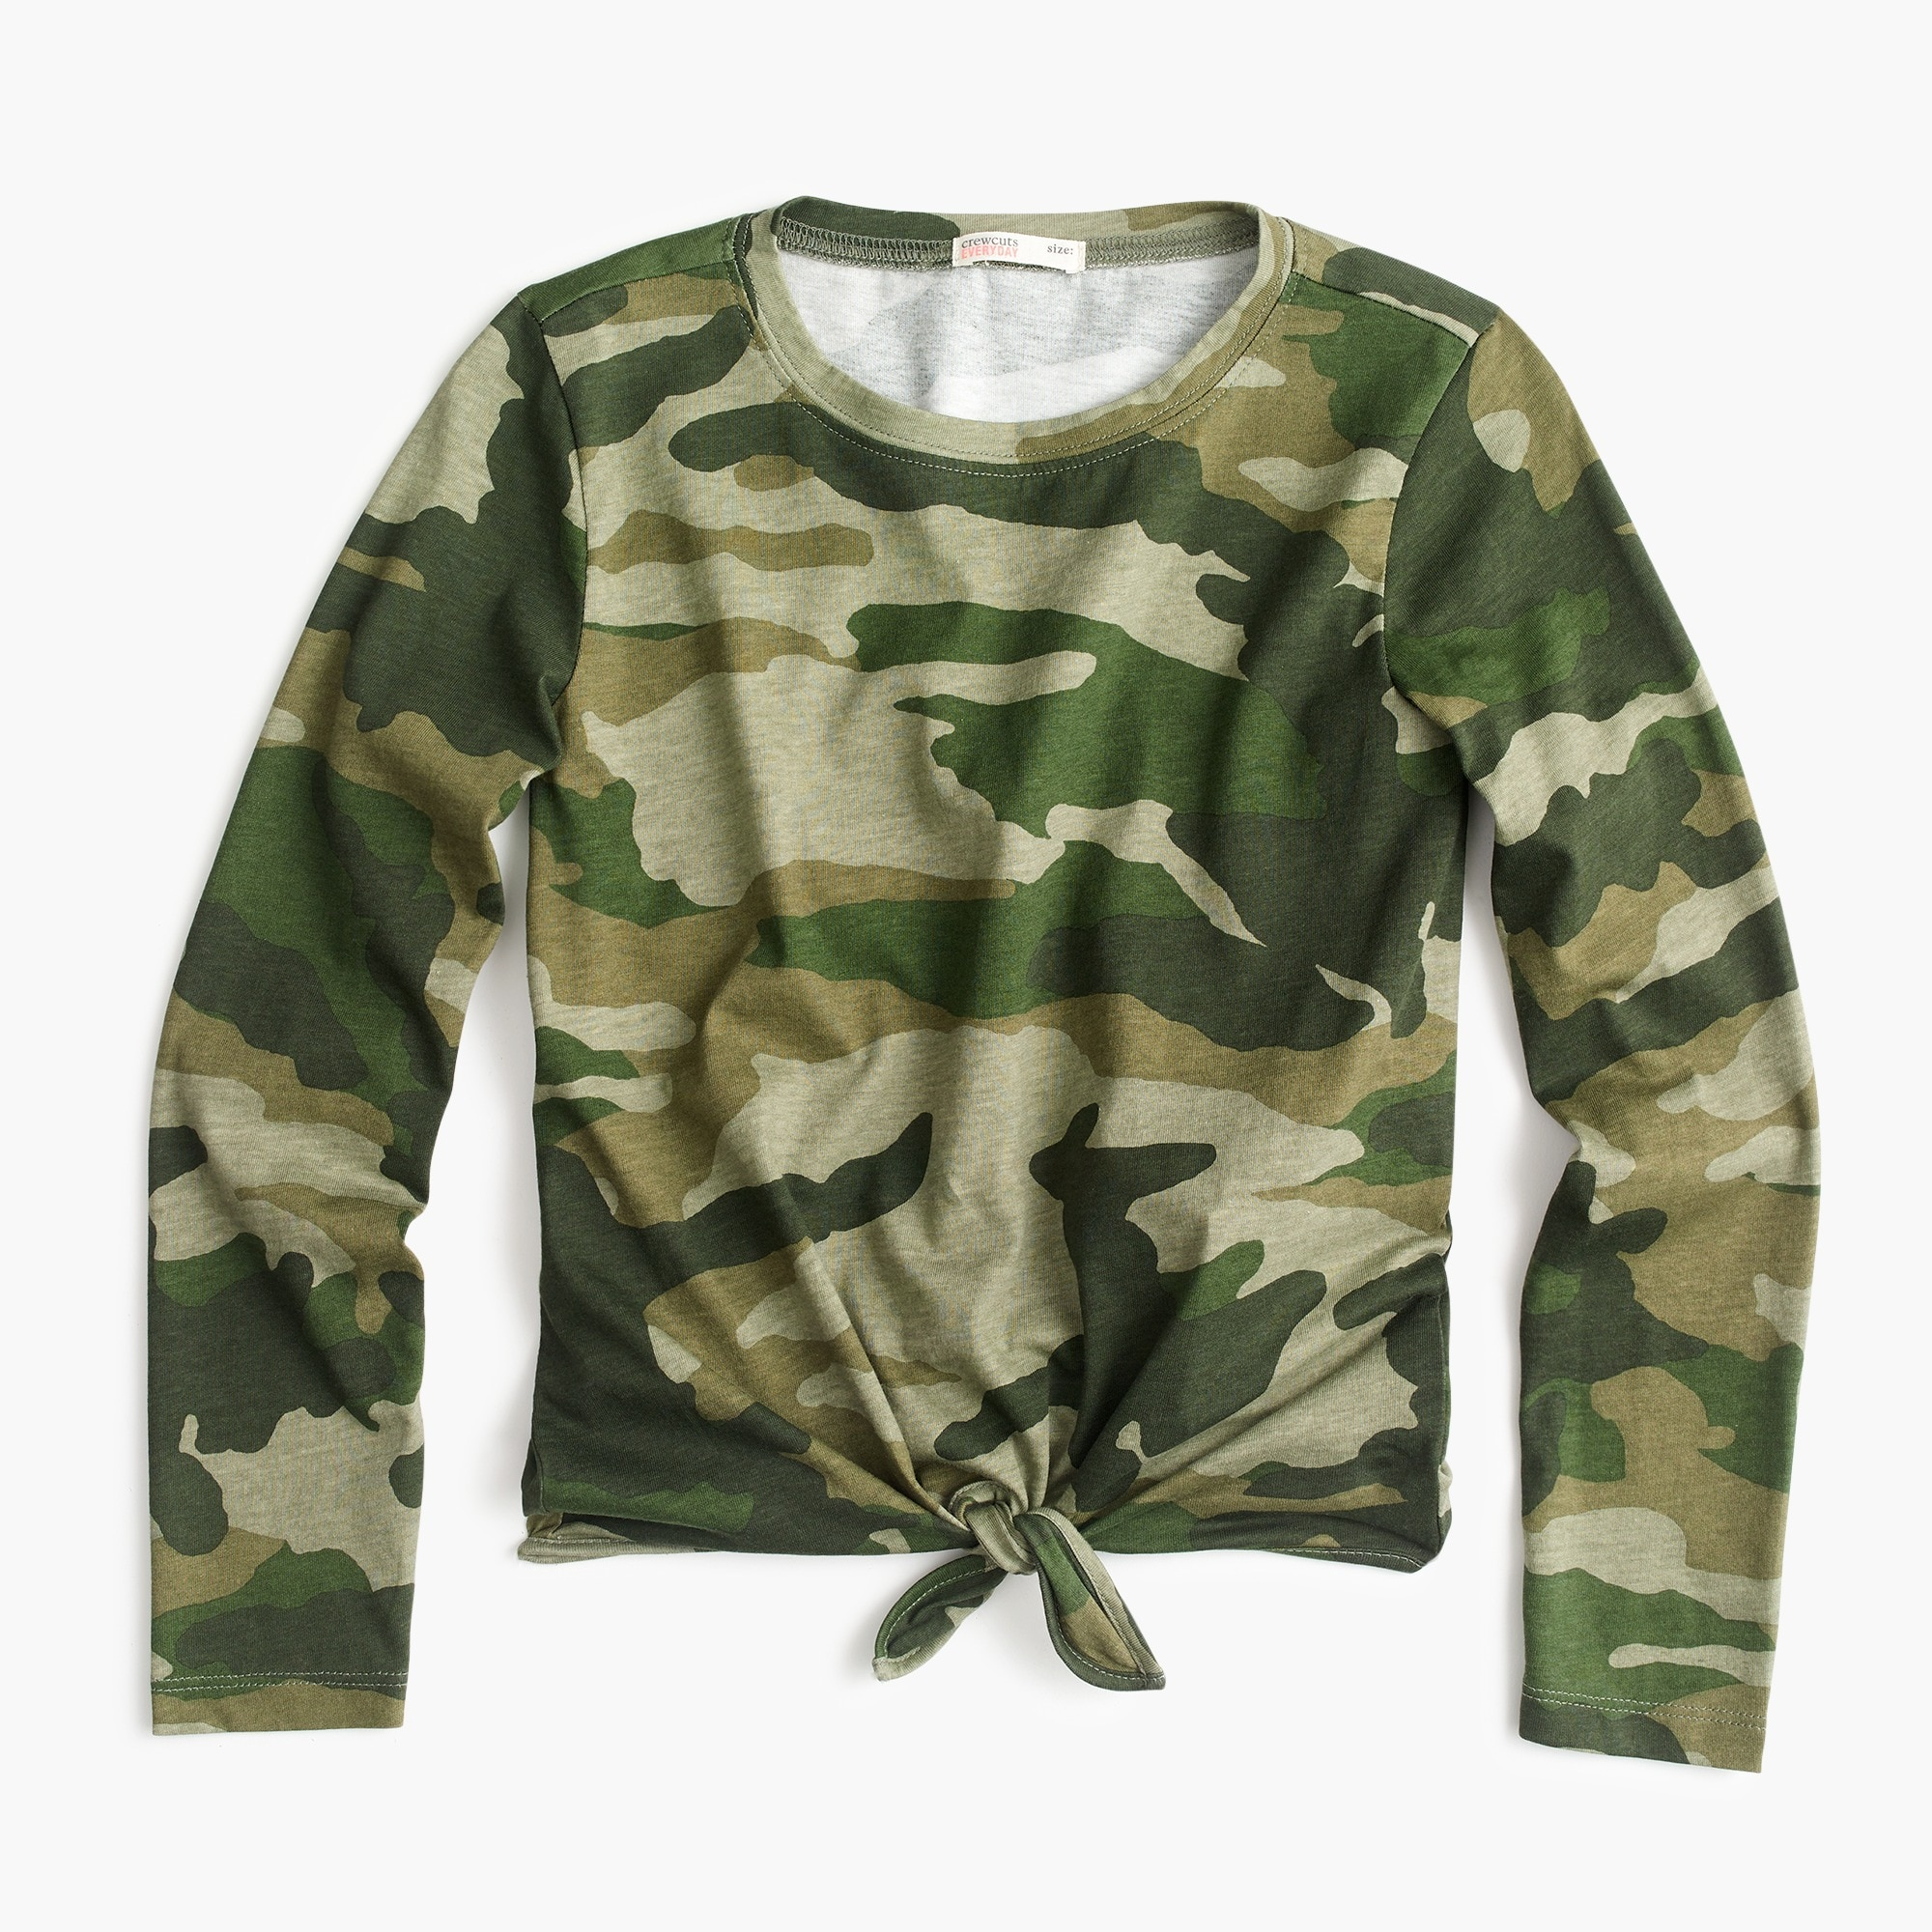 Image 1 for Girls' tie-front long-sleeve T-shirt in camo